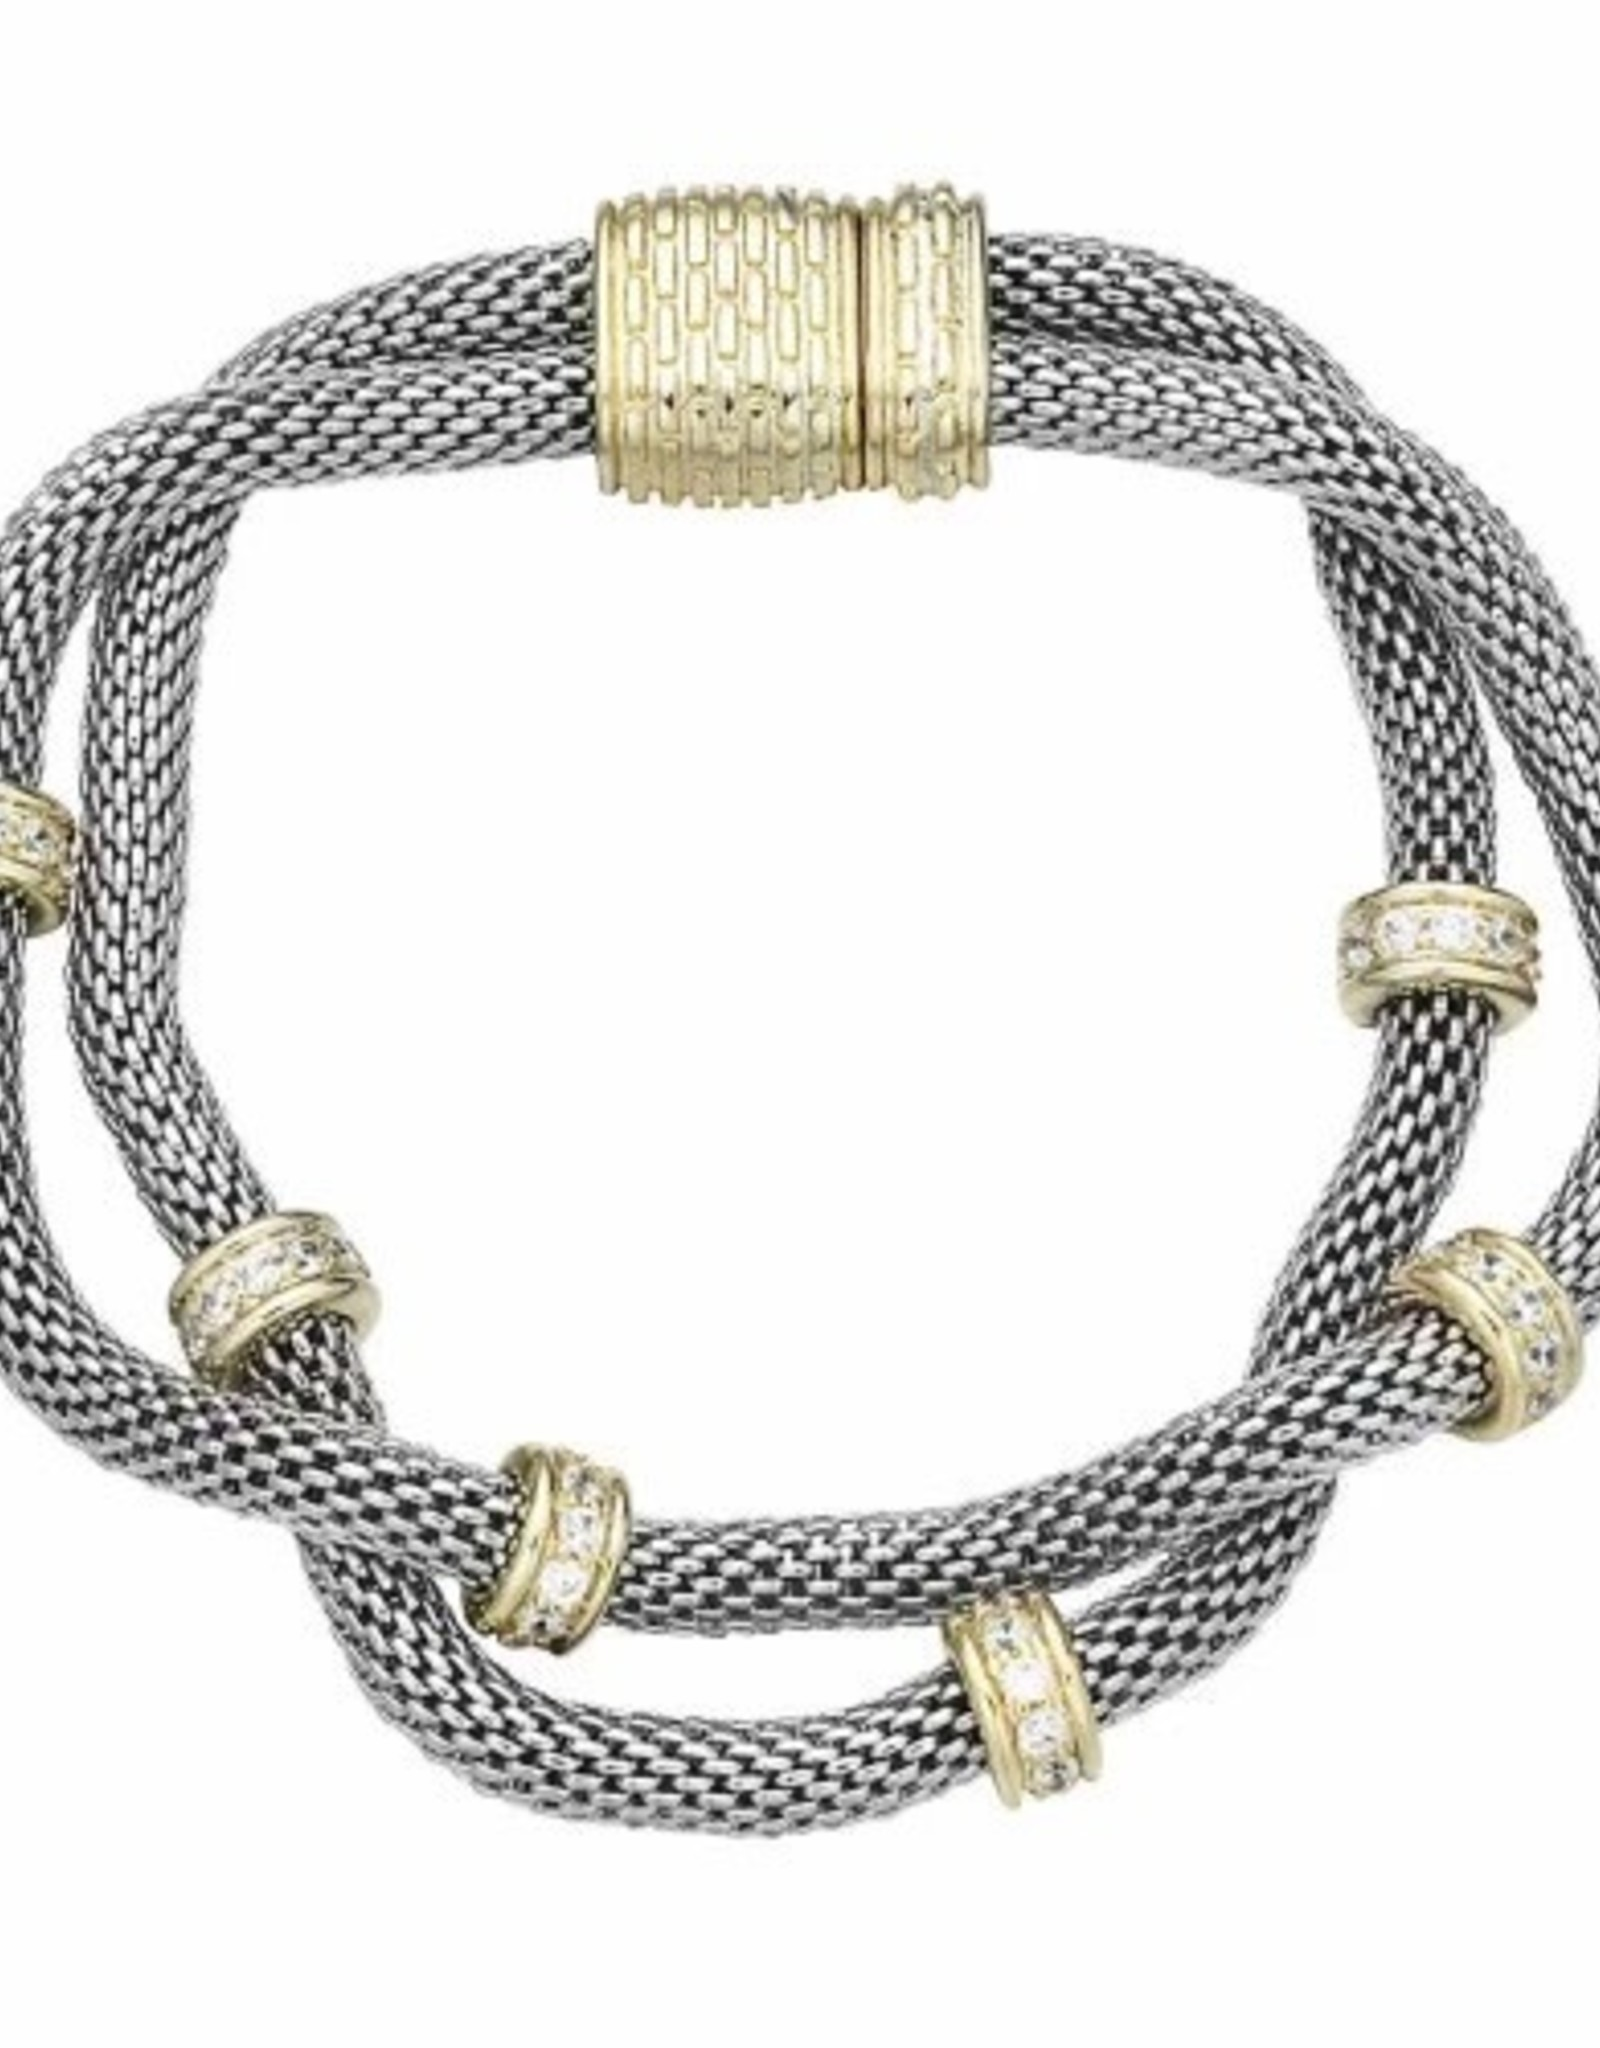 Magnetic Closure Silver and Gold Bracelet